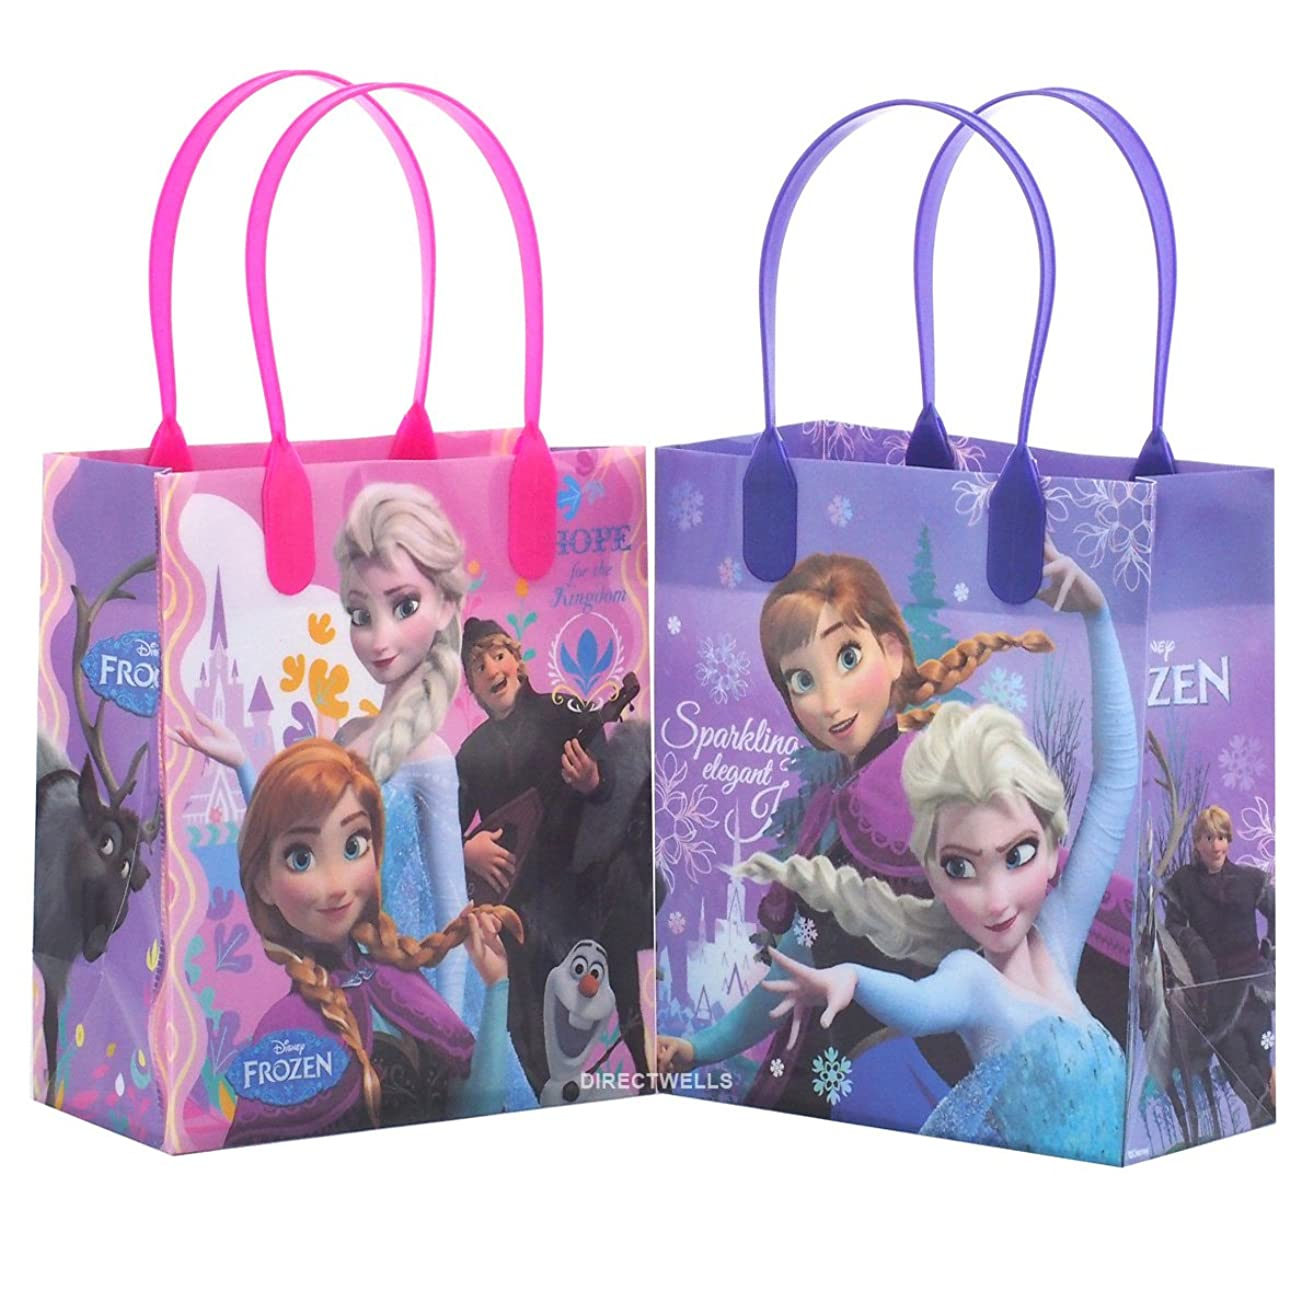 Disney Frozen Elegant and Premium Quality Party Favor Reusable Goodie Small Gift Bags 12 (12 Bags)